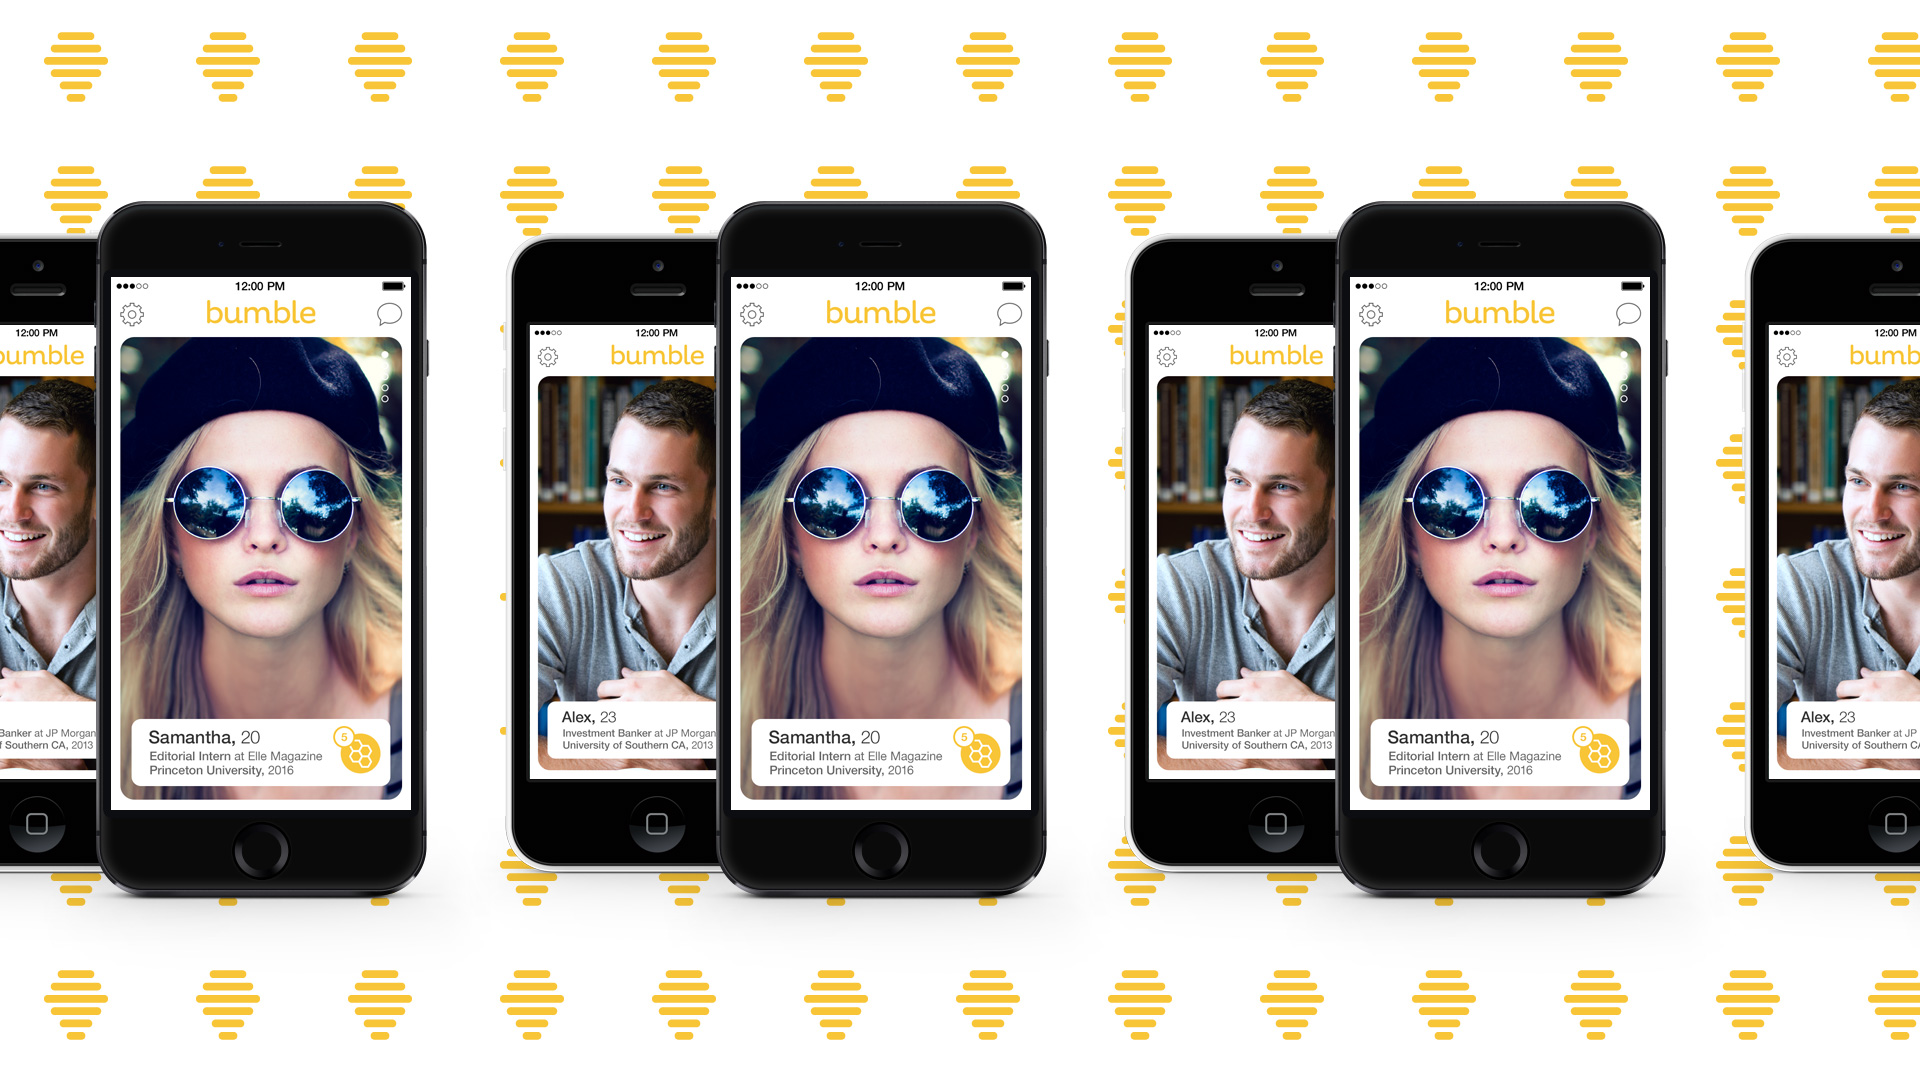 What dating apps are best for what